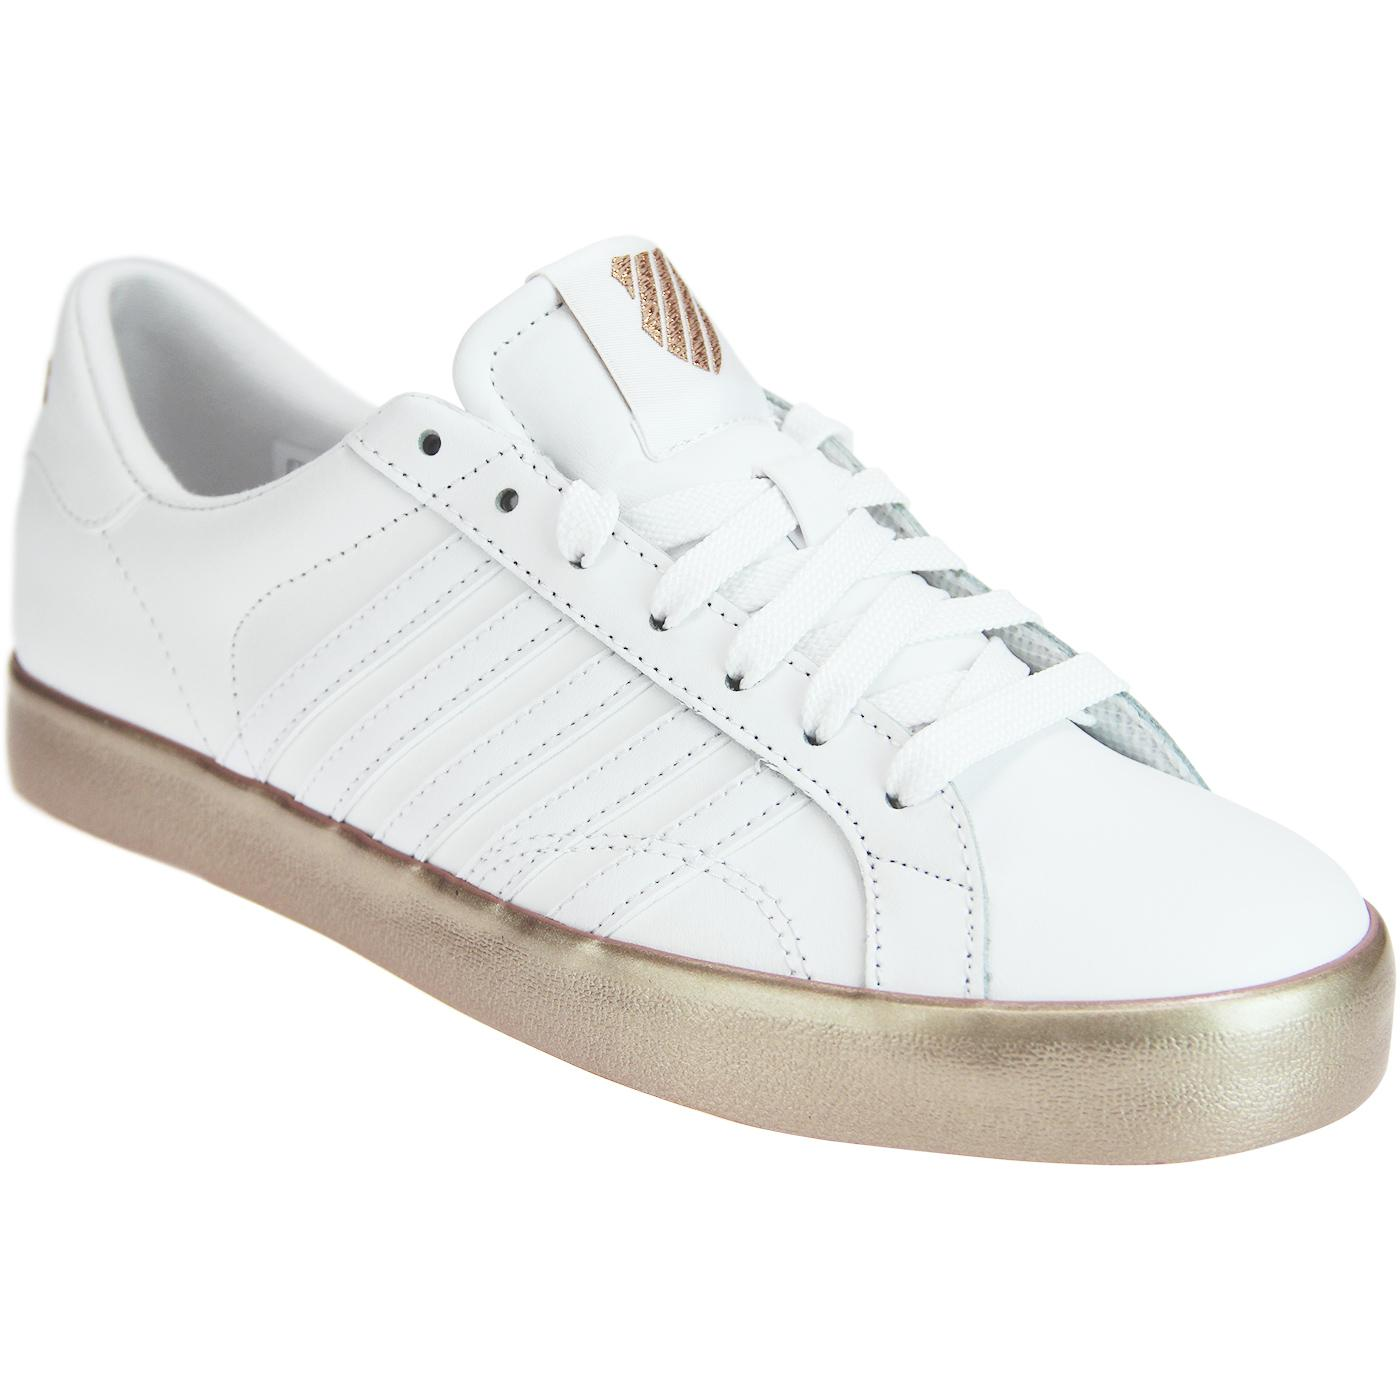 Belmont SO K-SWISS Tennis Trainers WHITE/ROSE GOLD